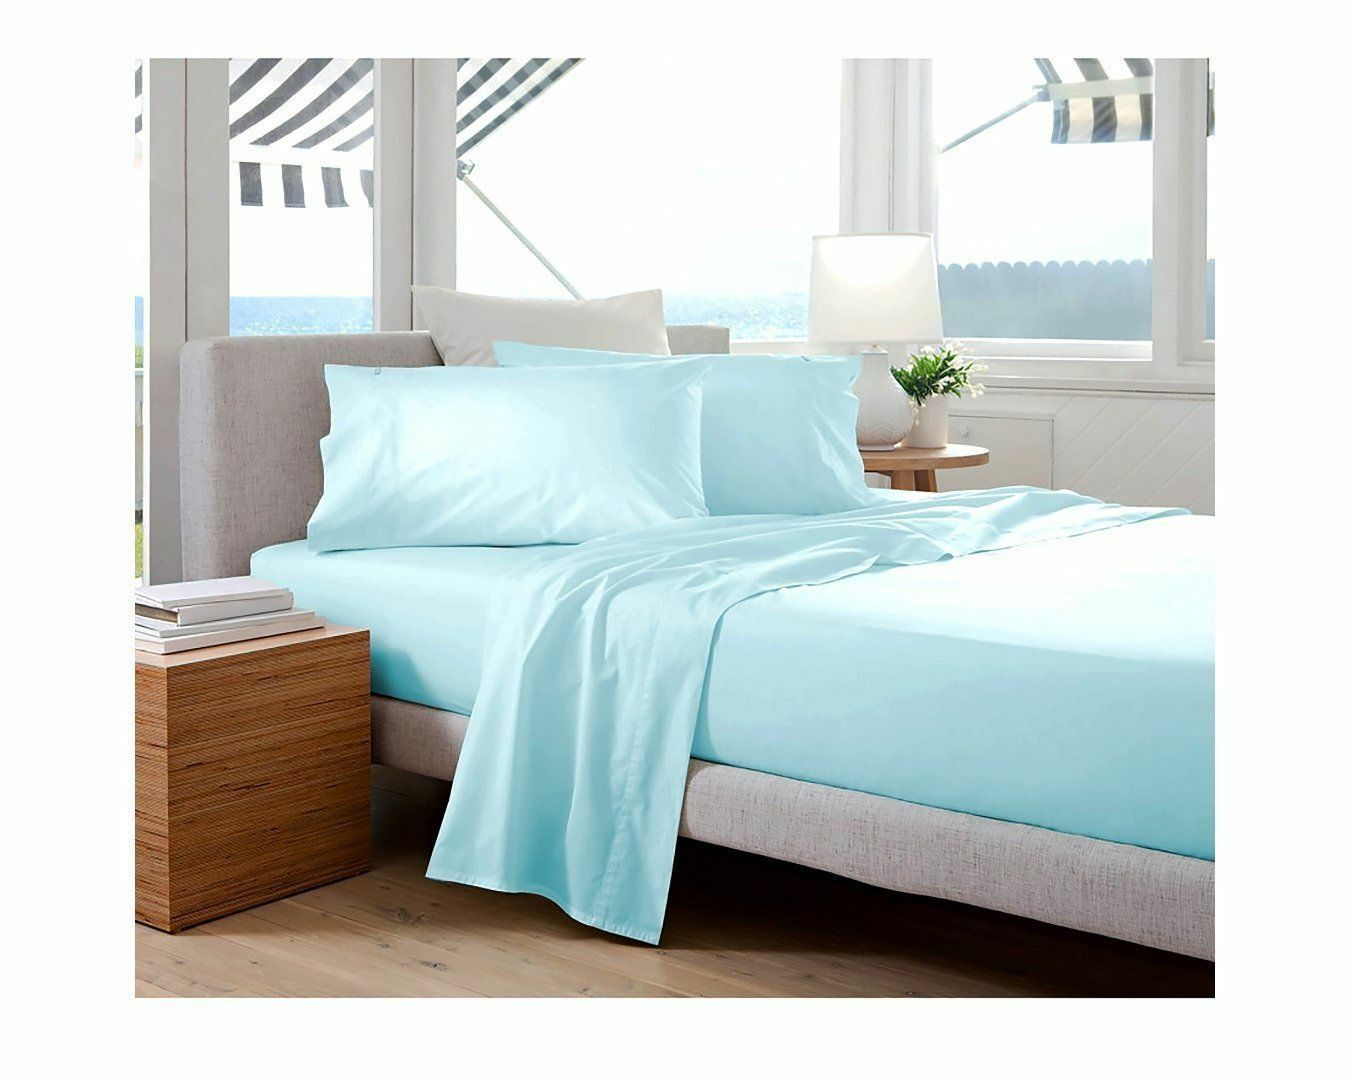 US Bedding Items 1000 Thread Count 100% Egyptian Cotton Light bluee Solid_